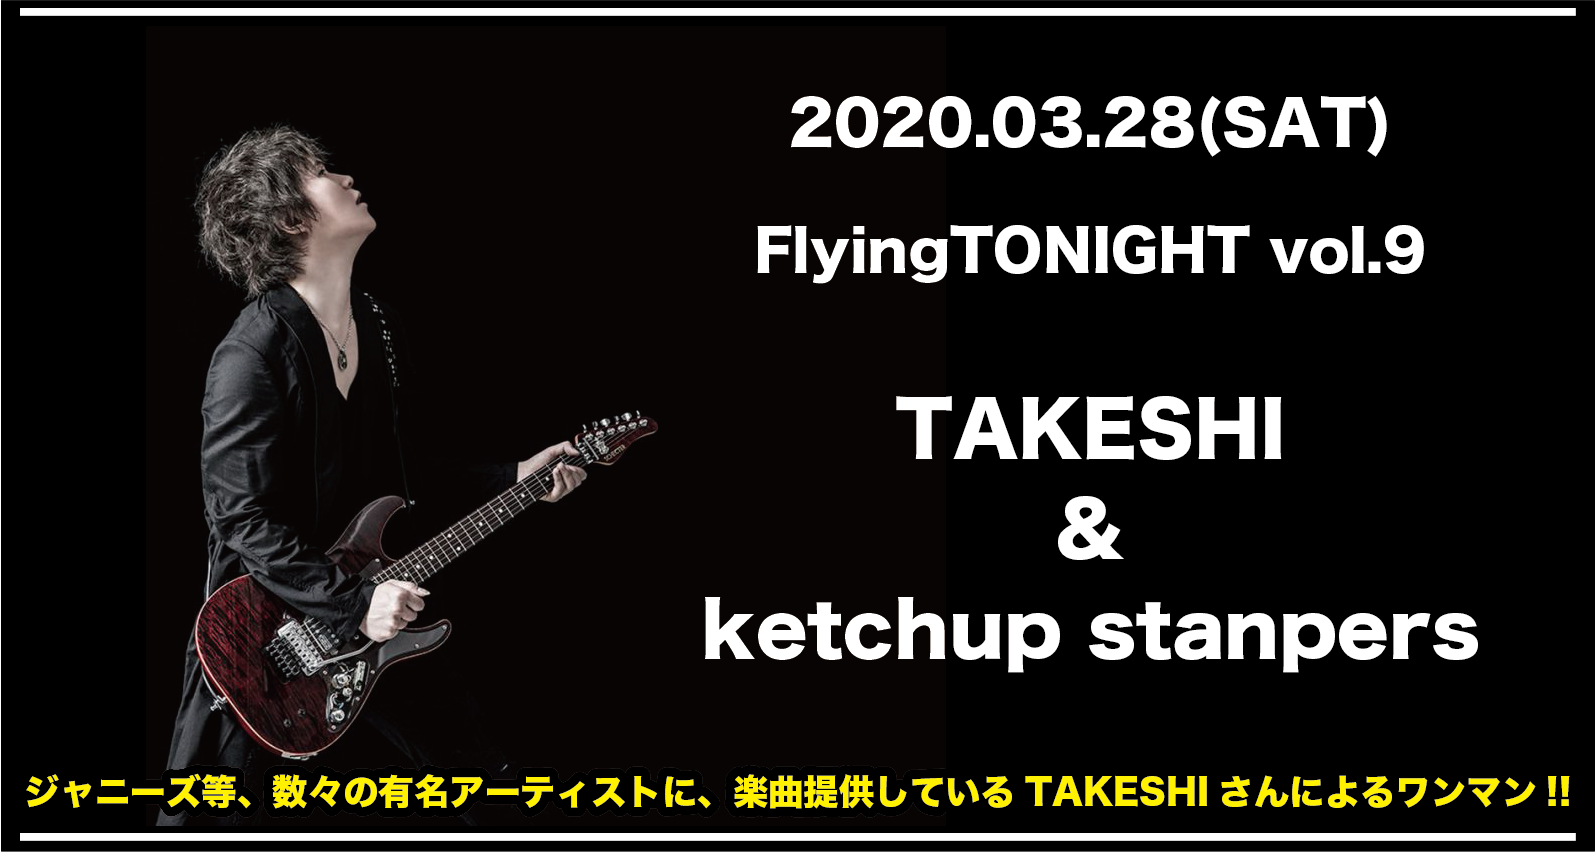 FlyingTONIGHT Vol.9